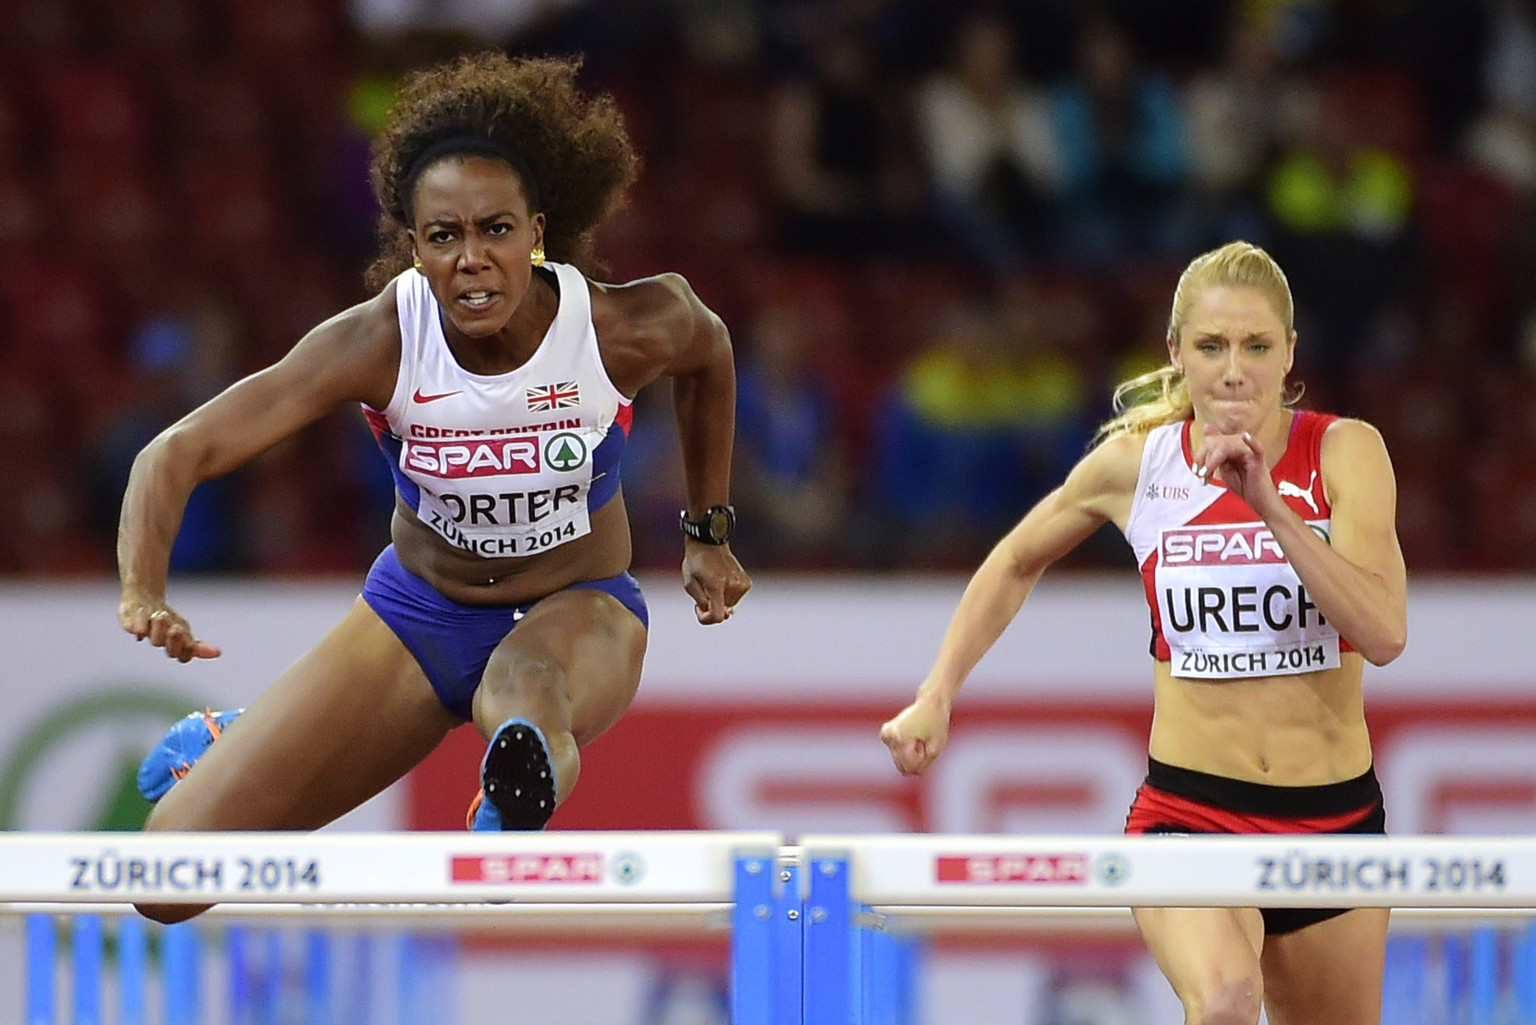 Great Britain's Tiffany Porter (L) and Switzerland's Lisa Urech compete in the Women's 100m hurdles semi-final during the European Athletics Championships at the Letzigrund stadium in Zurich on August 12, 2014.  AFP PHOTO / OLIVIER MORIN